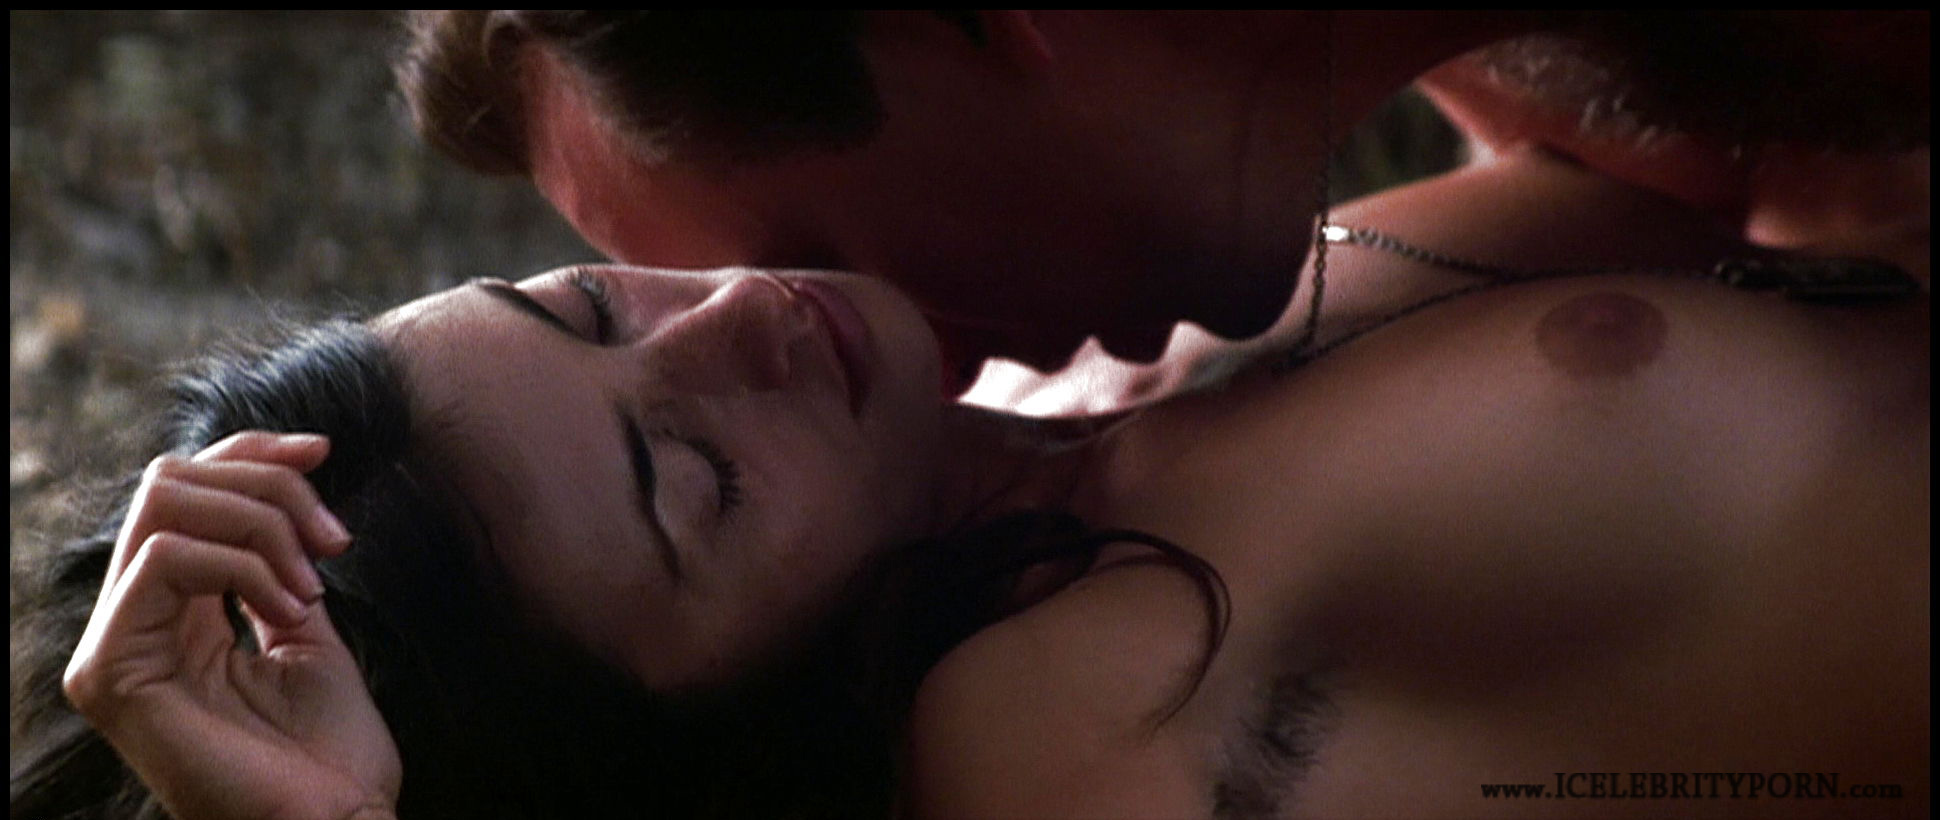 Penelope Cruz Desnuda Imagenes Porno en HD-coleccion-tetas-vagina-famosas-latinas-follando-hollywood-sex-tape-fake-cogiendo (2)